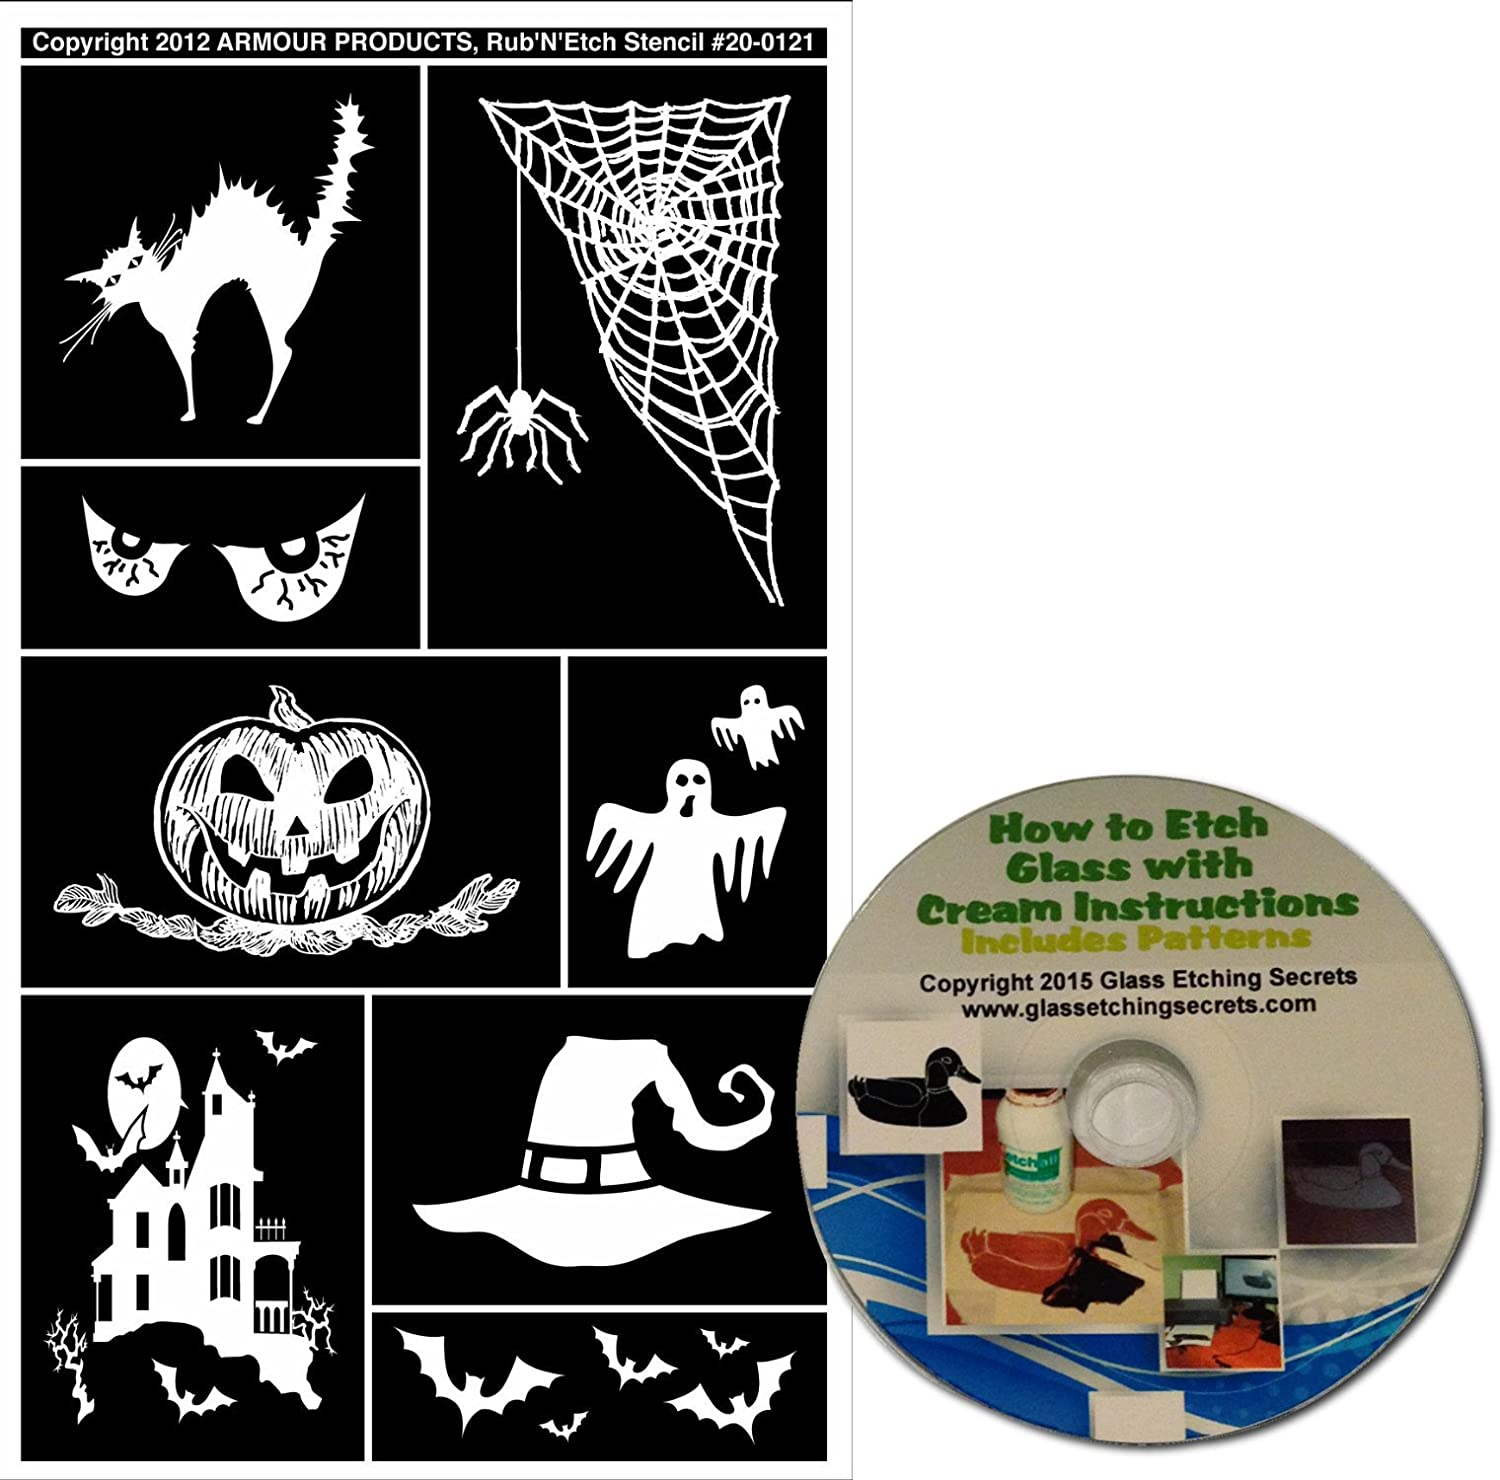 Jack-O-Lantern Halloween Glass Etching Stencils #2 with Black Cat Ghosts Haunted House Spider Web Spooky Eyes Free How to Etch CD